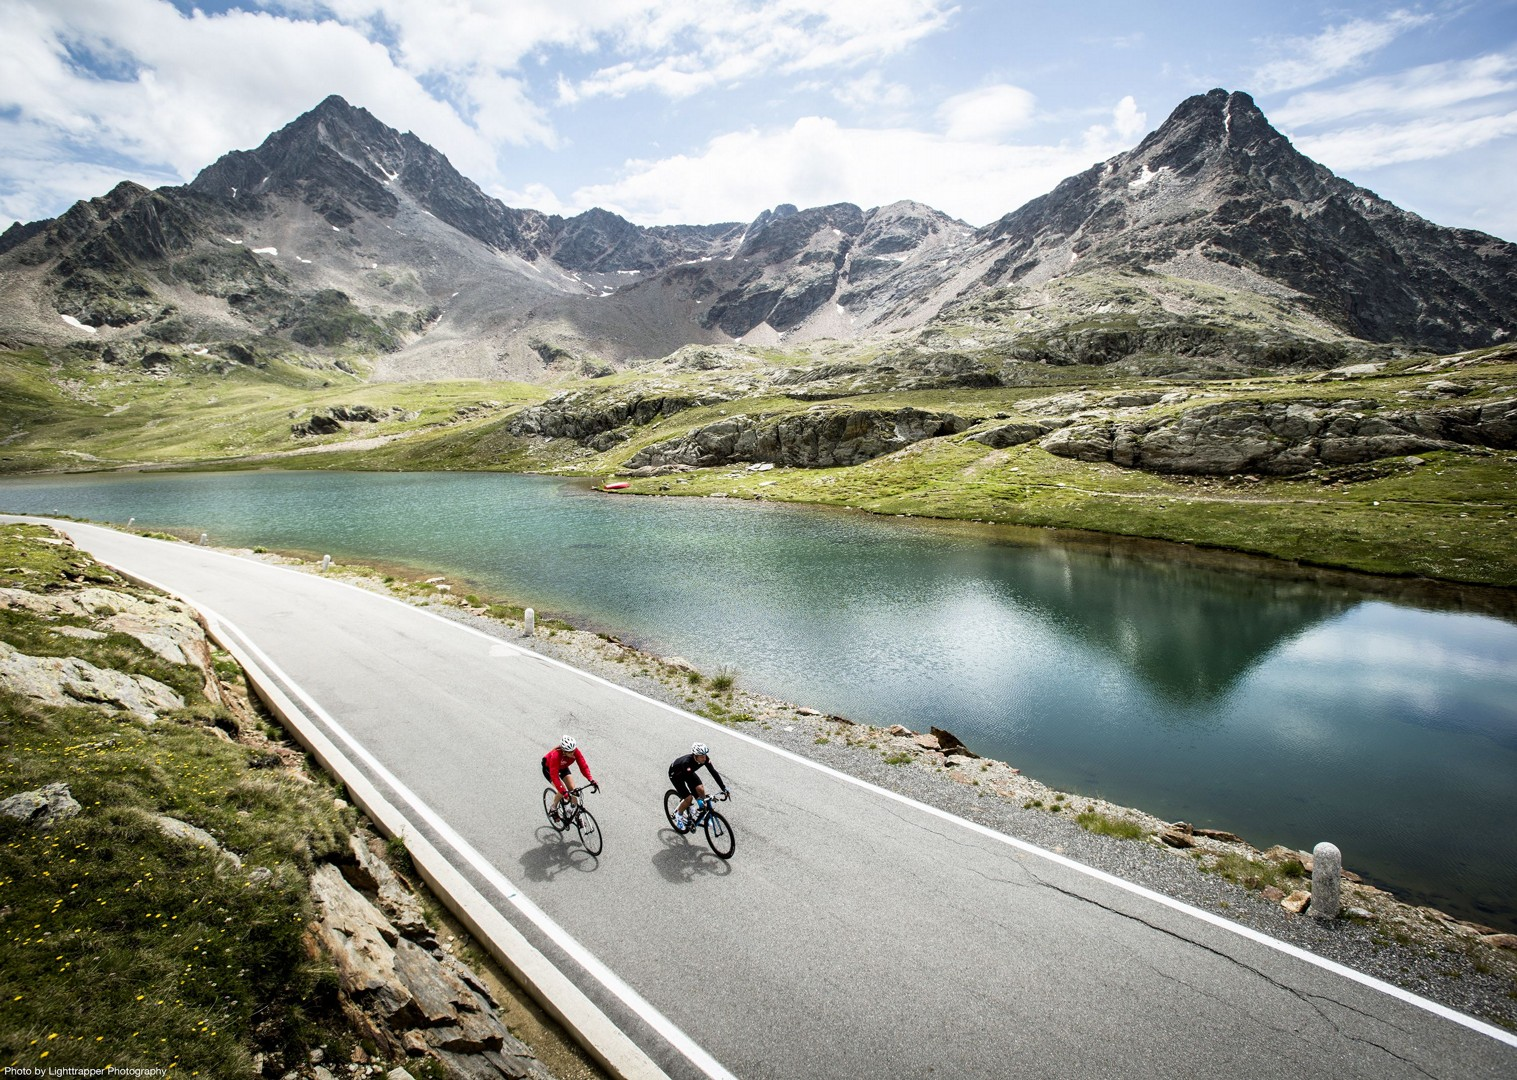 gavia-guided-road-cycling-holiday.jpg - Italy - Alps and Dolomites - Giants of the Giro - Guided Road Cycling Holiday - Road Cycling